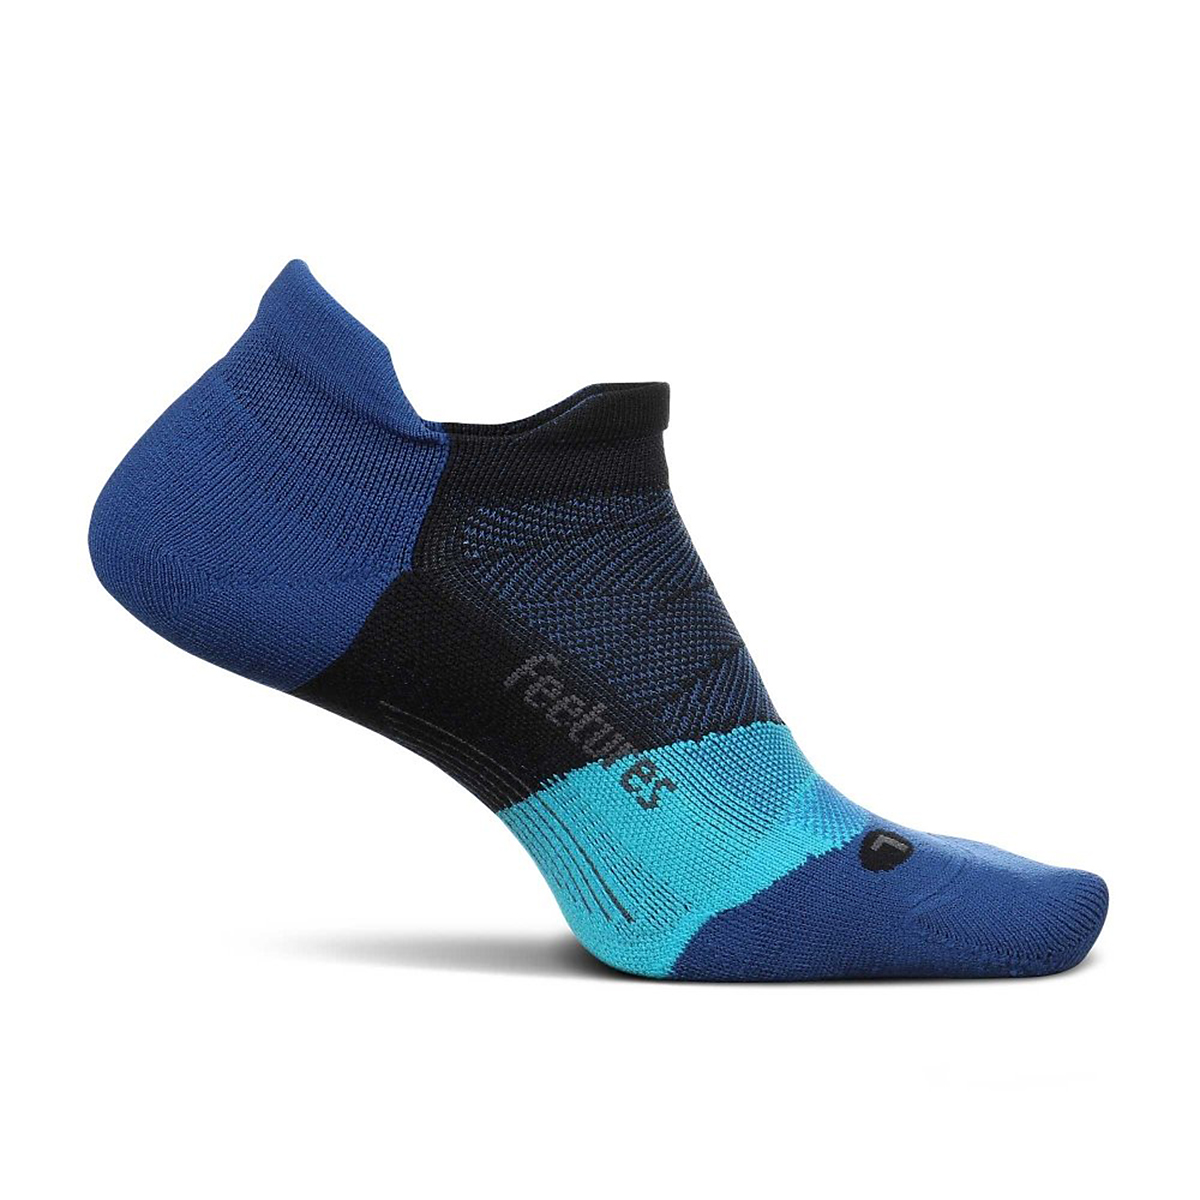 Feetures Elite Light Cushion No Show Sock - Color: Oceanic - Size: S, Oceanic, large, image 1